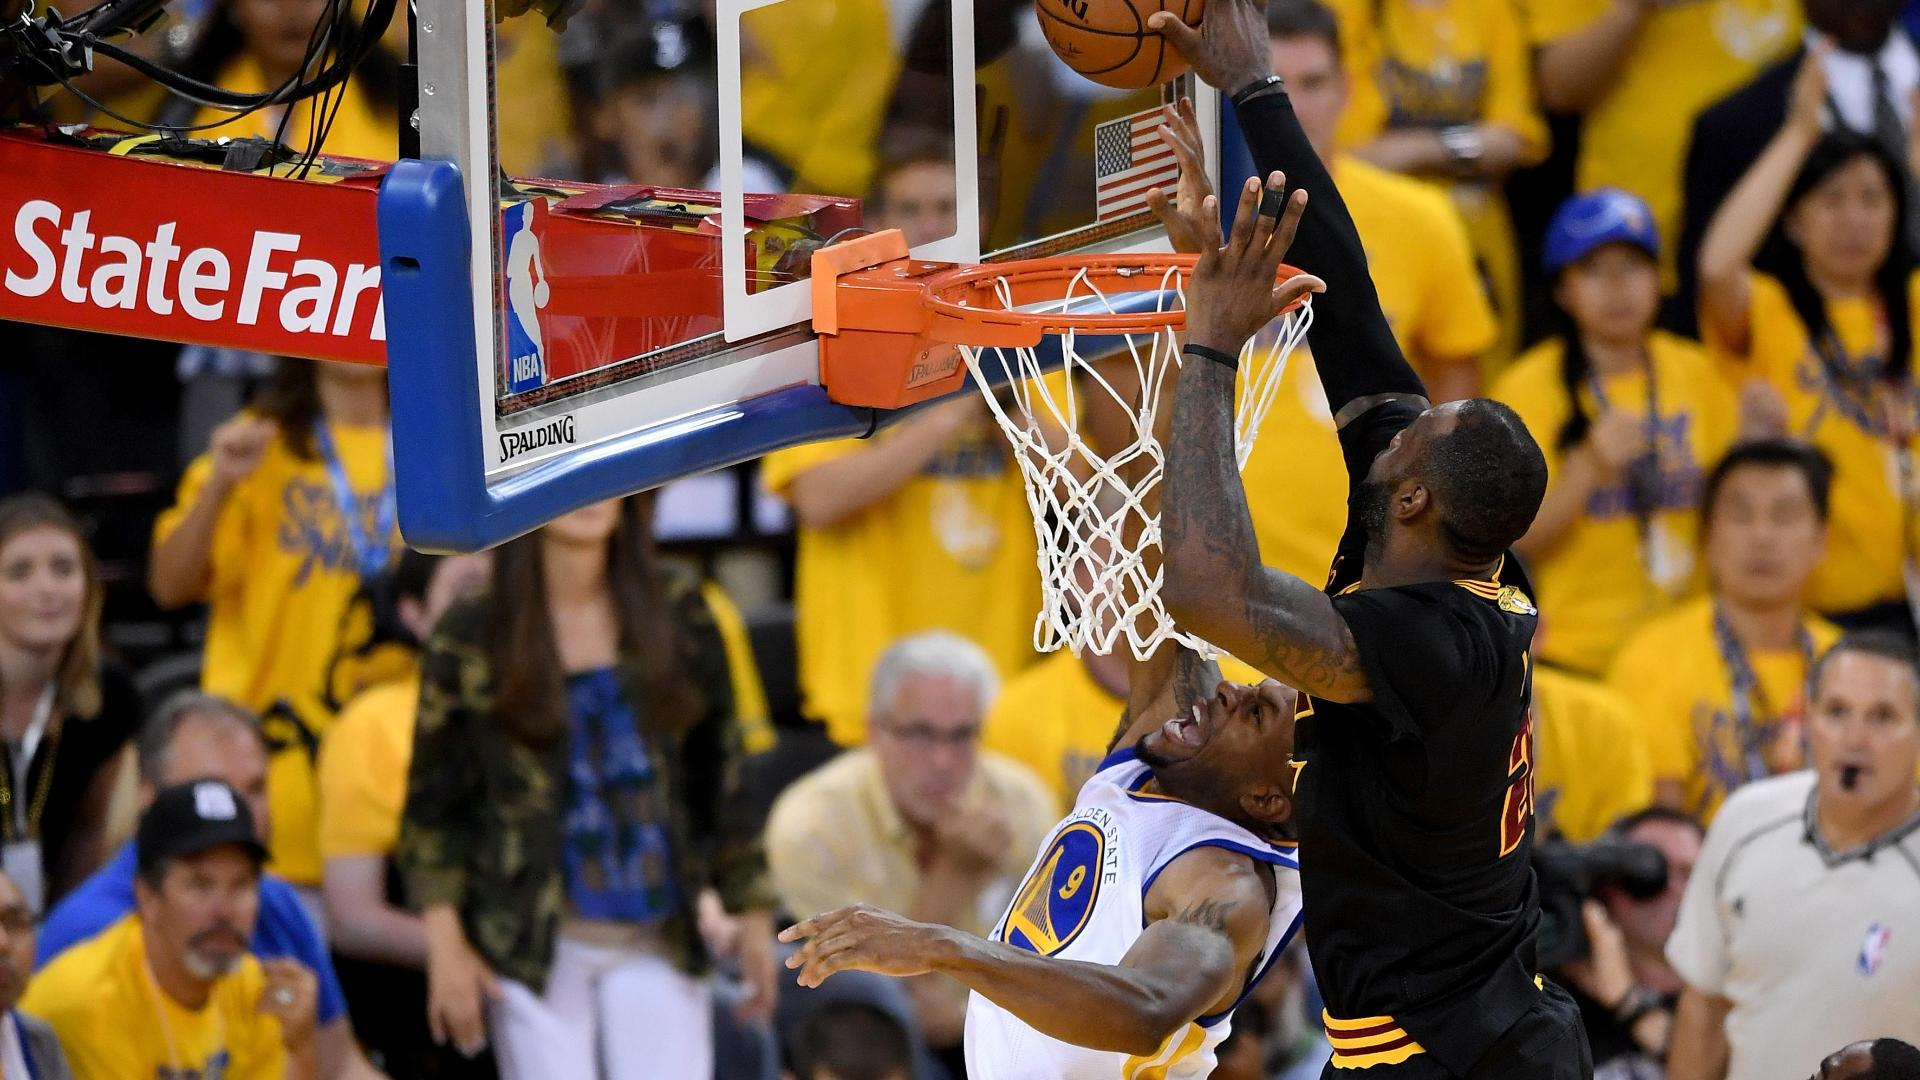 Happy 3-1 day! LeBron's crucial block helped secure Cavs' first title